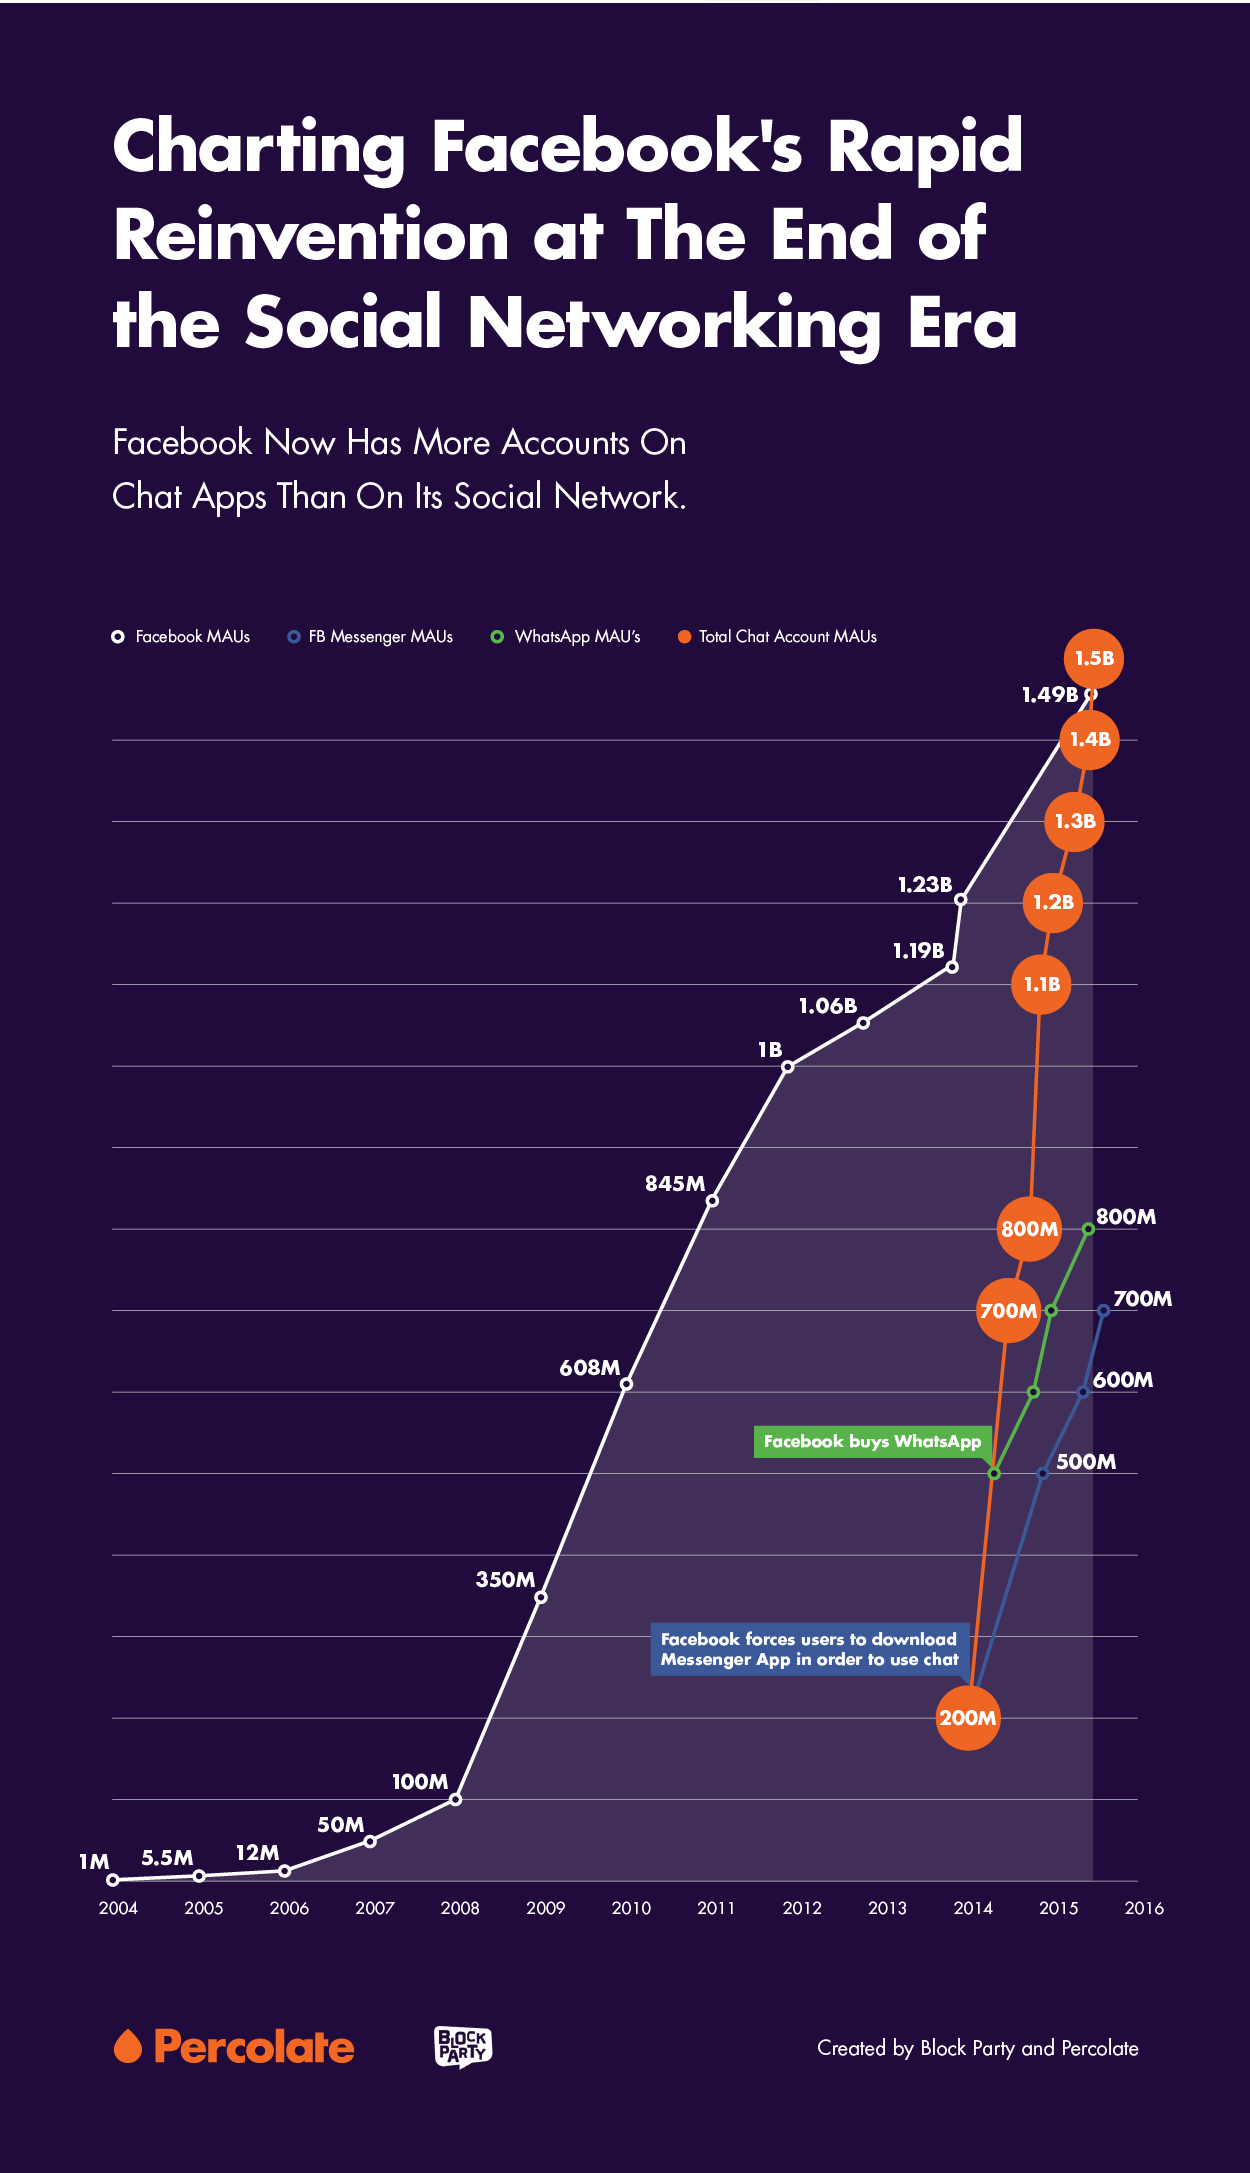 Graphic showing how Facebook has more accounts on chat apps than on its social media network.